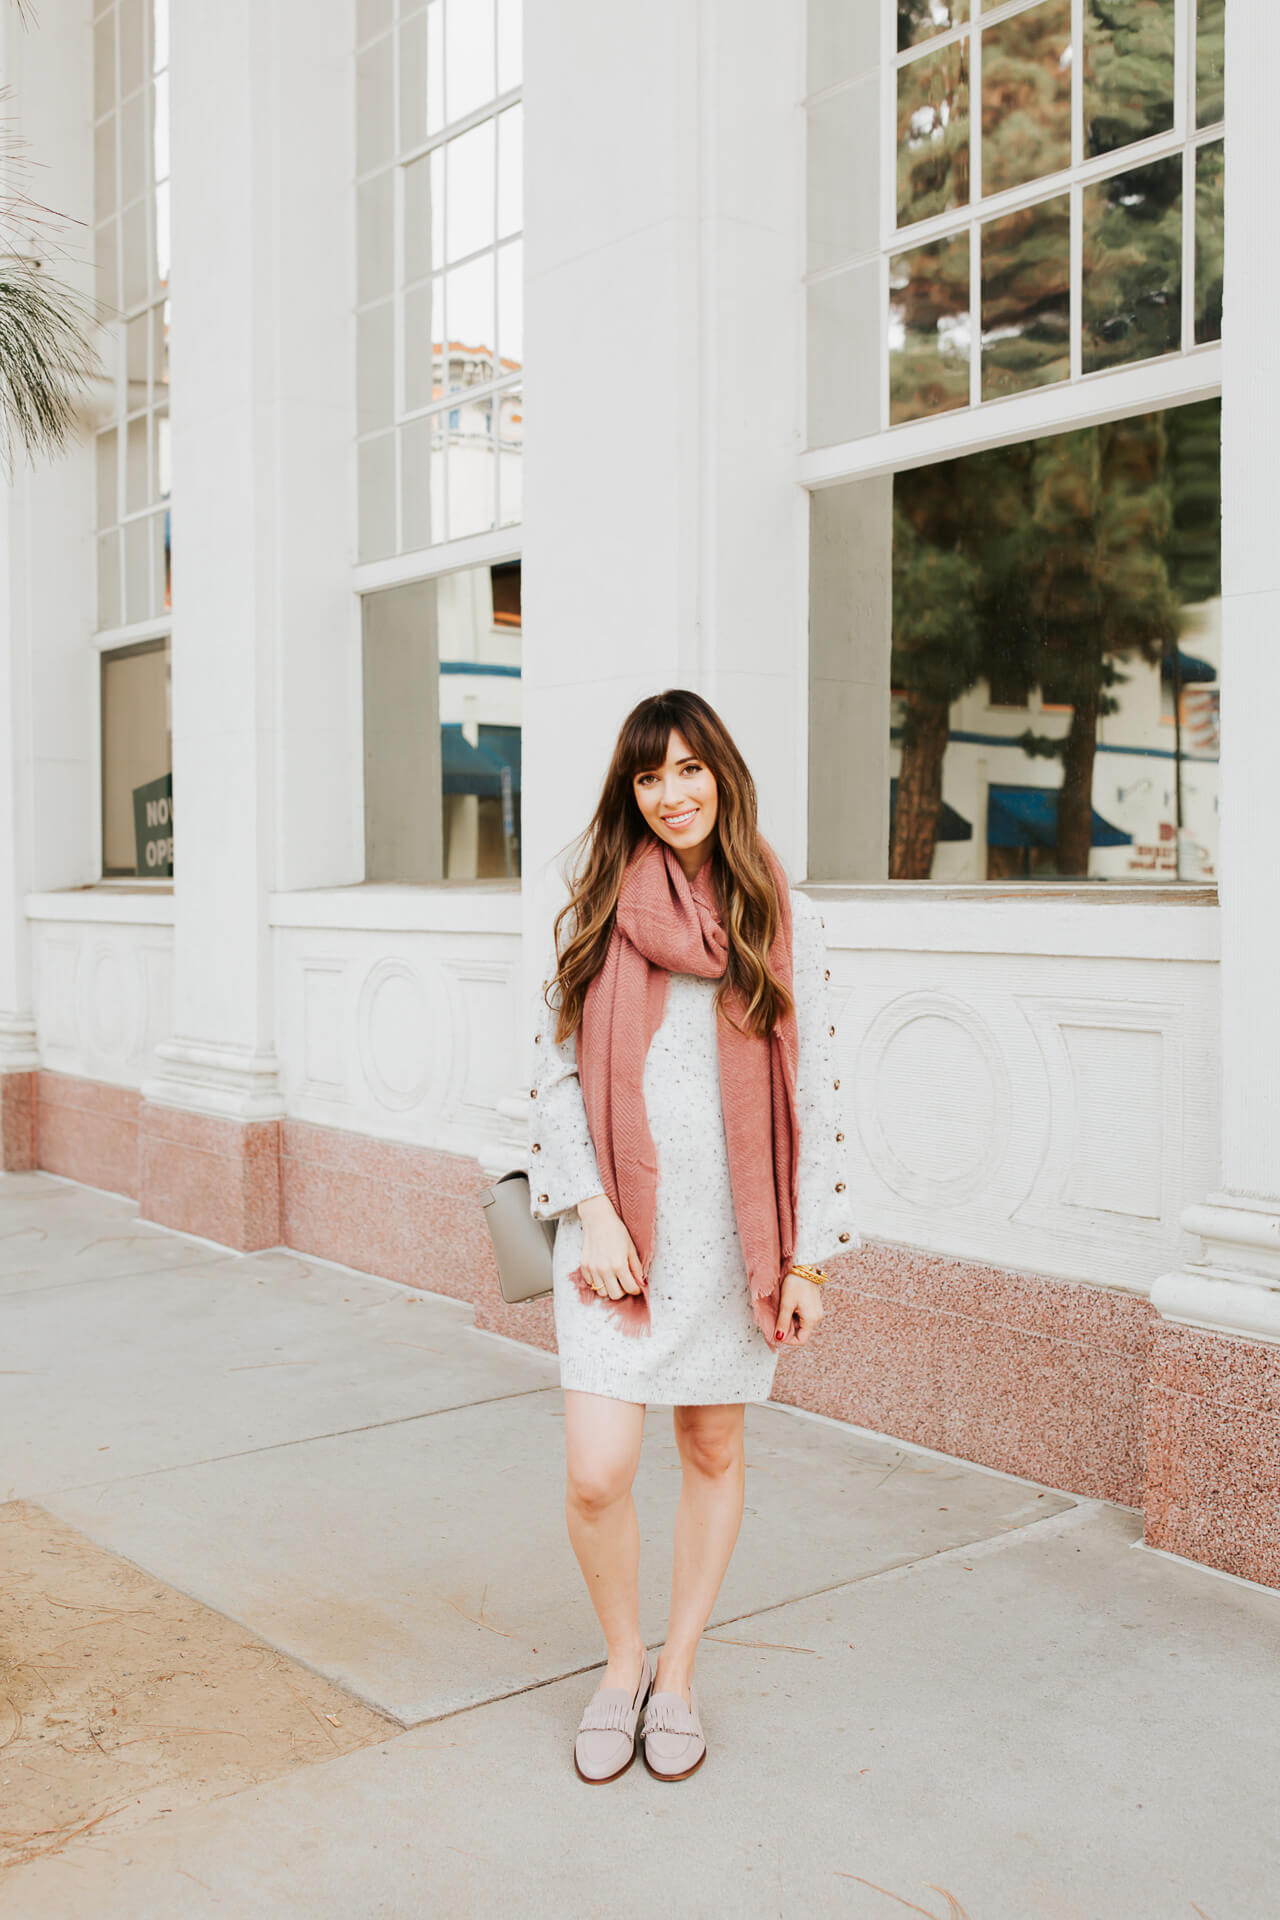 This first trimester maternity outfit is so chic! - M Loves M @marmar